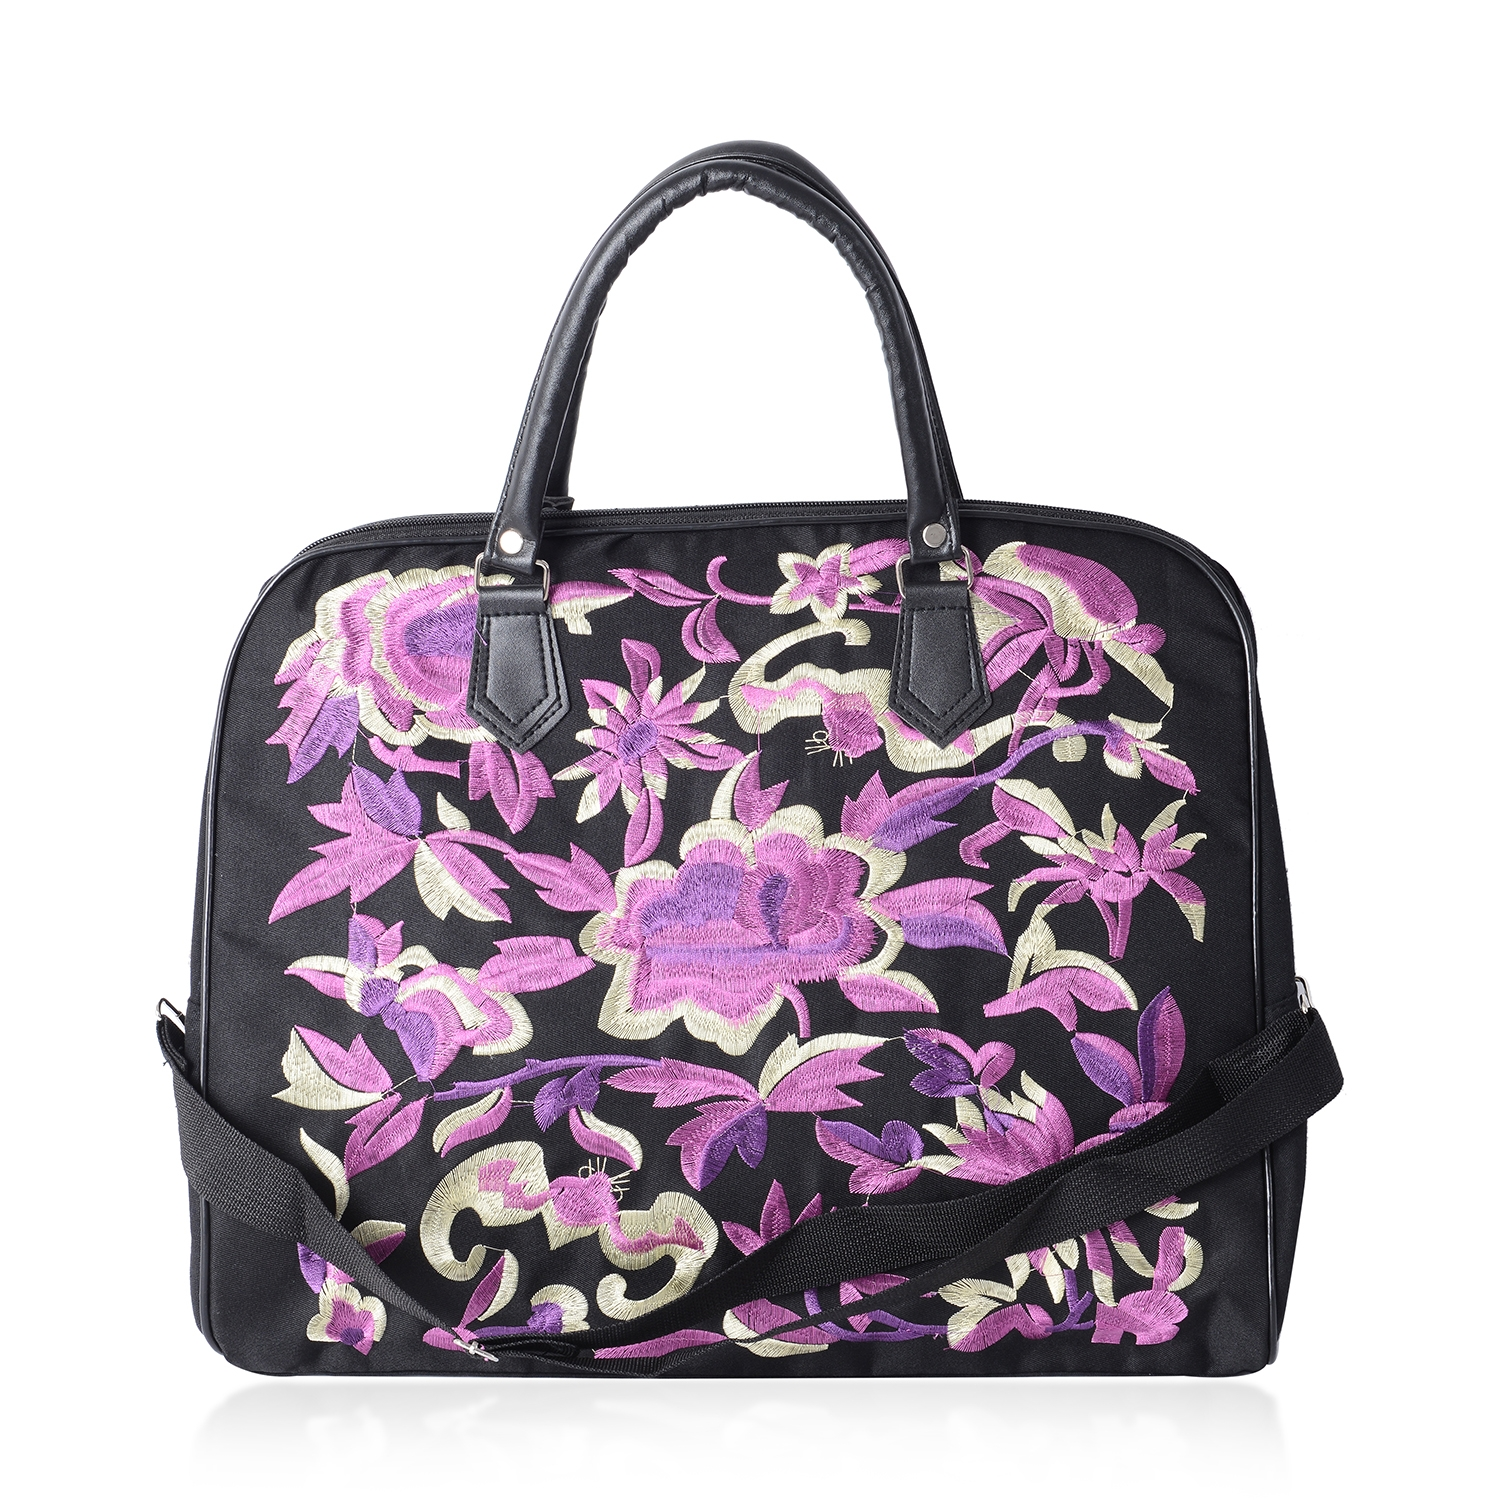 Purple and Tan Flower Embroidered Black Canvas Travel Bag (17x7.5x13 in)  with Shoulder Straps (36.5 in)